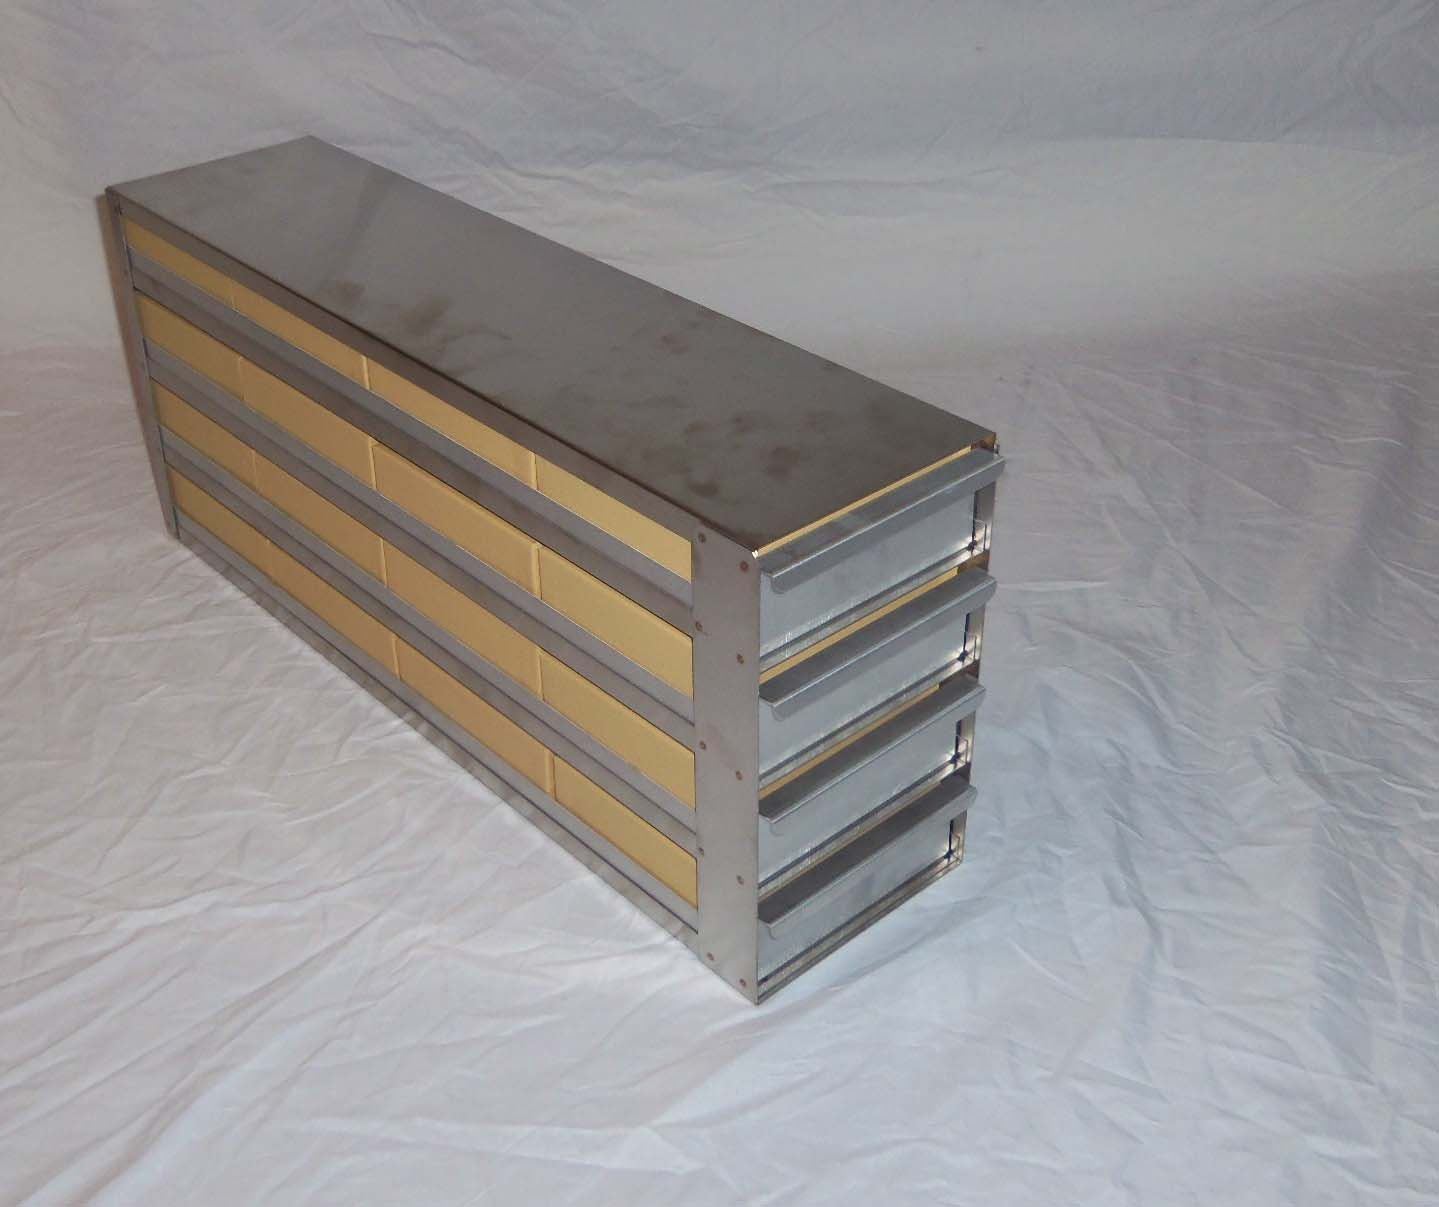 High Efficiency Sliding Drawers